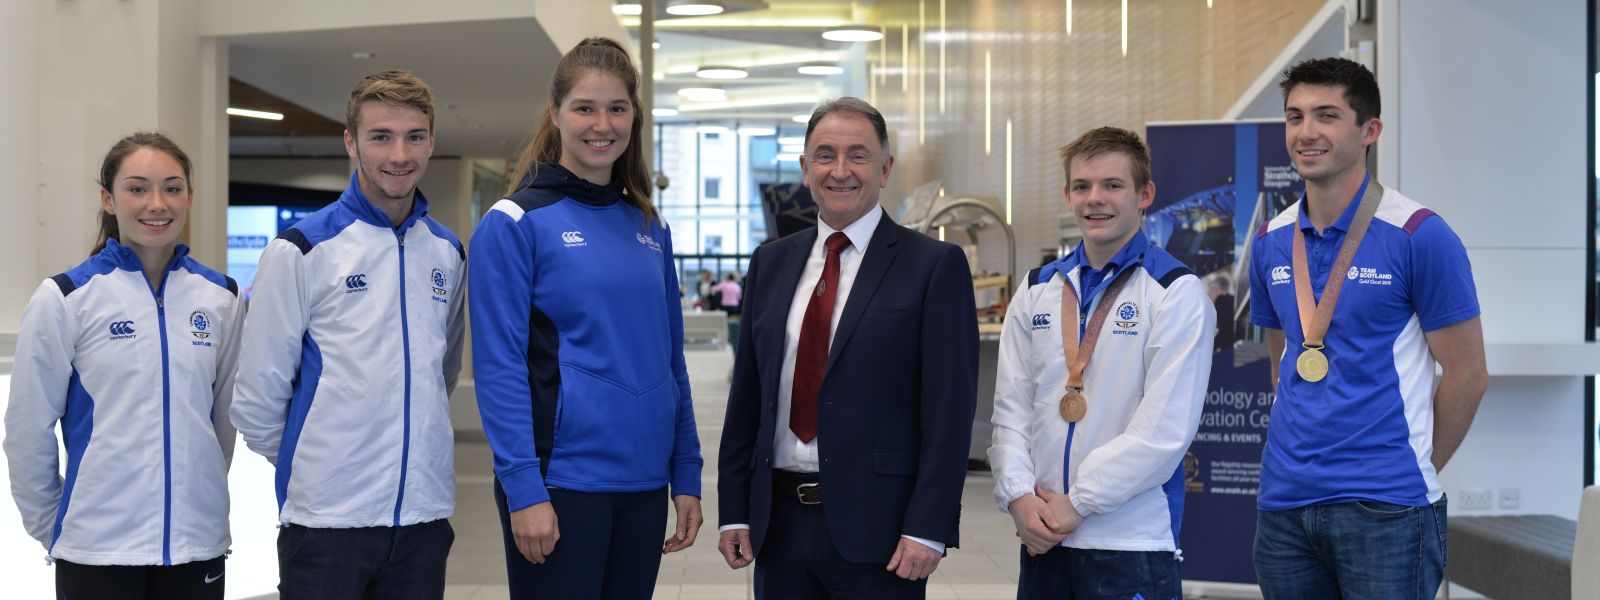 Commonwealth Games student athletes Holly McArthur, Rob Harwood, Bethan Goodwin, David Weir and David McMath with Principal & Vice-Chancellor Professor Sir Jim McDonald.